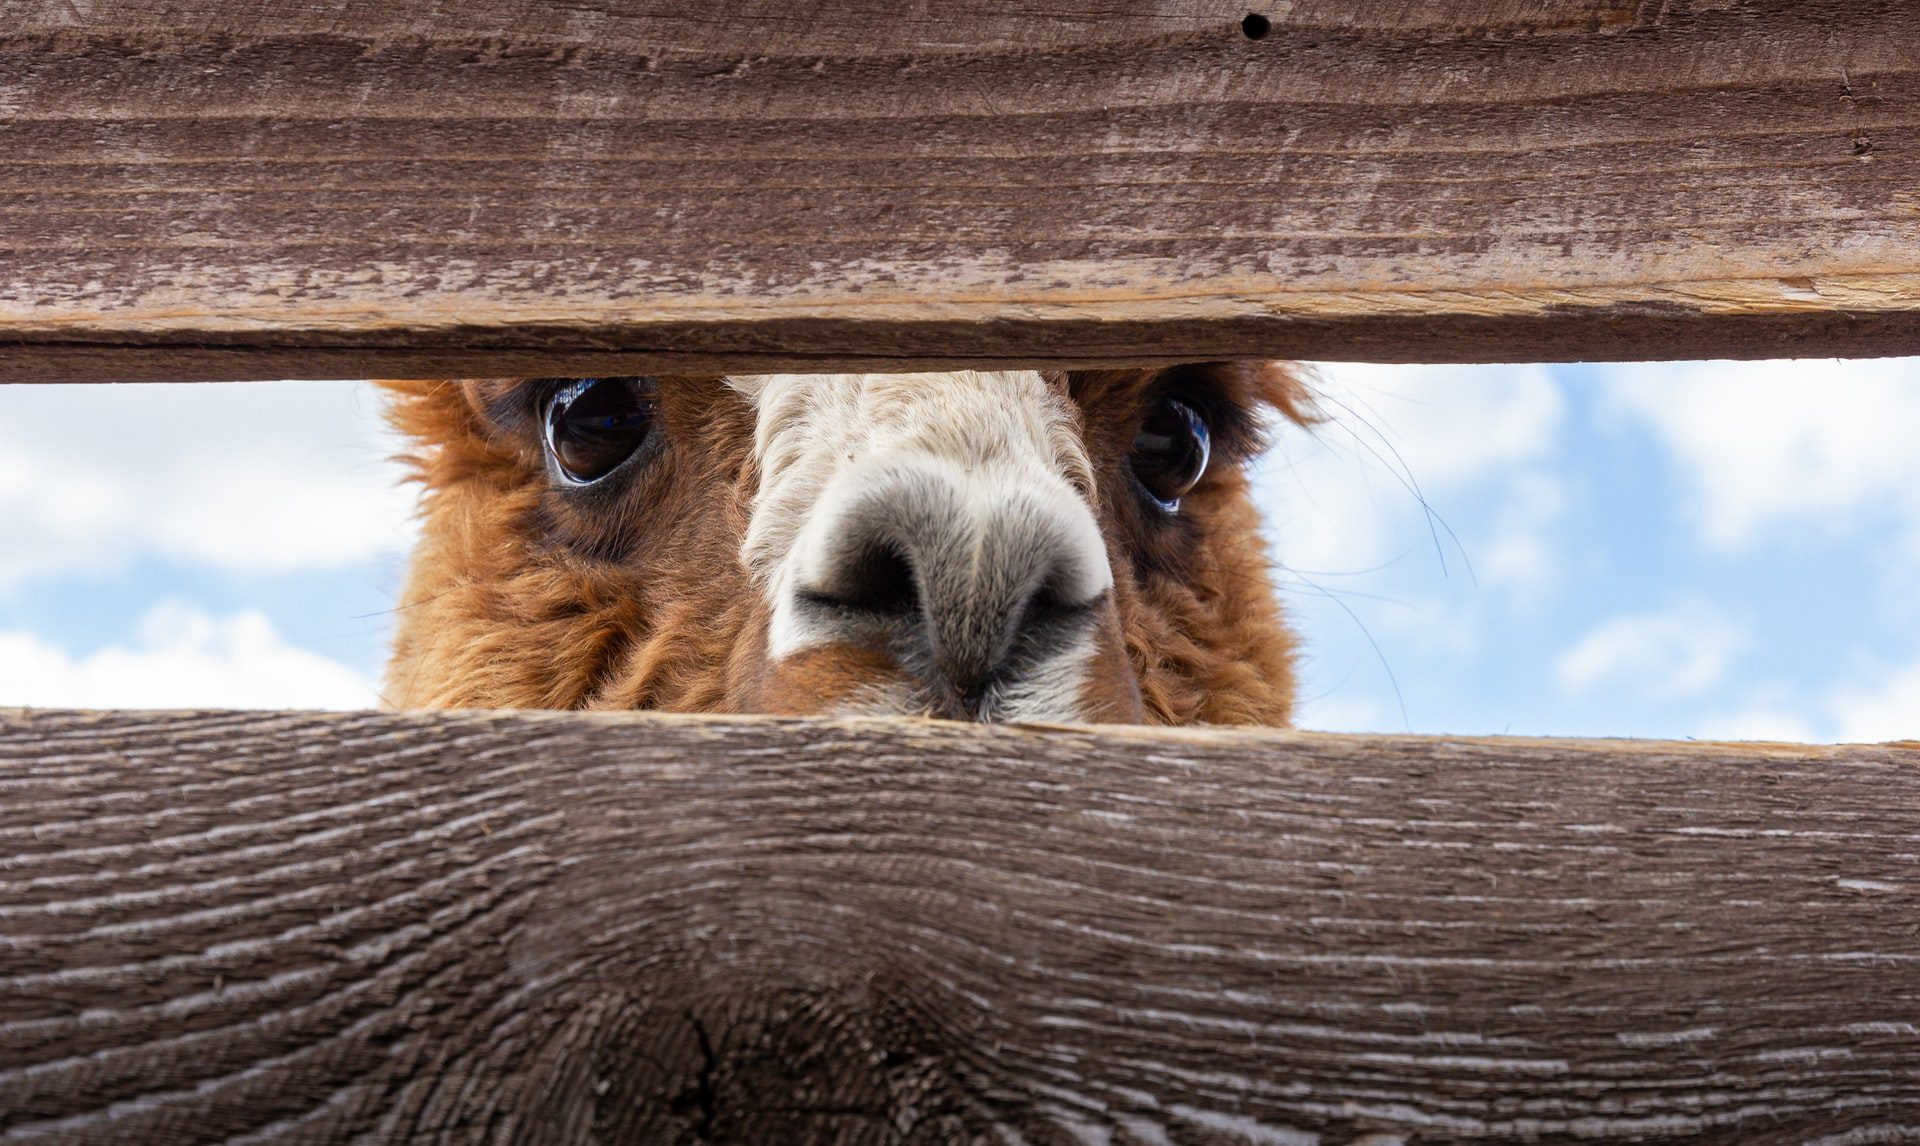 a picture of a llama showing curiosity - curiosity in business